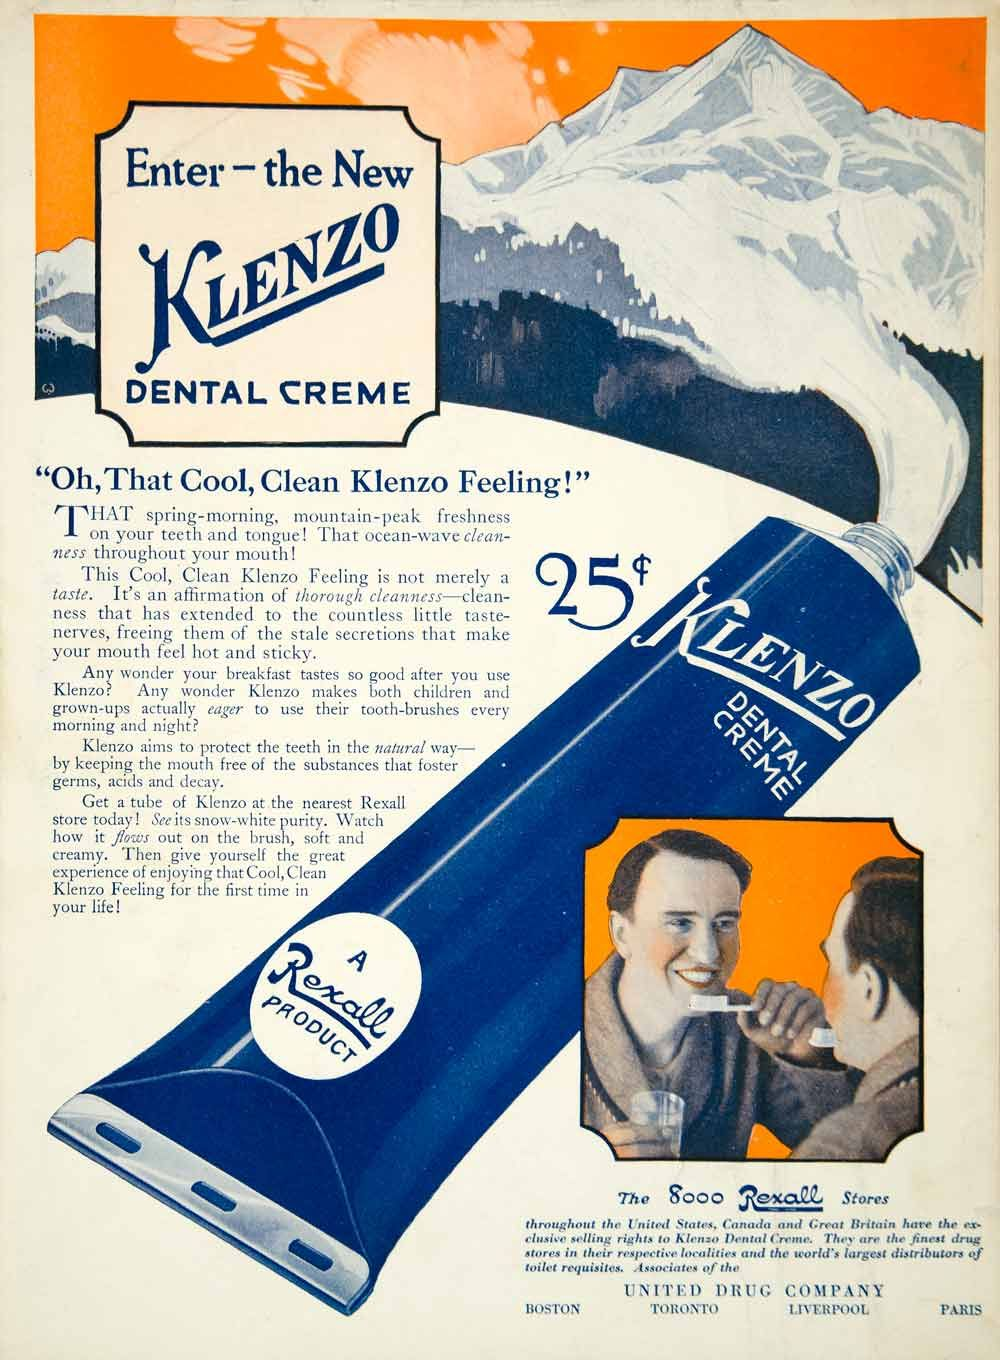 Vintage Ads, Original Advertising and Illustrations items